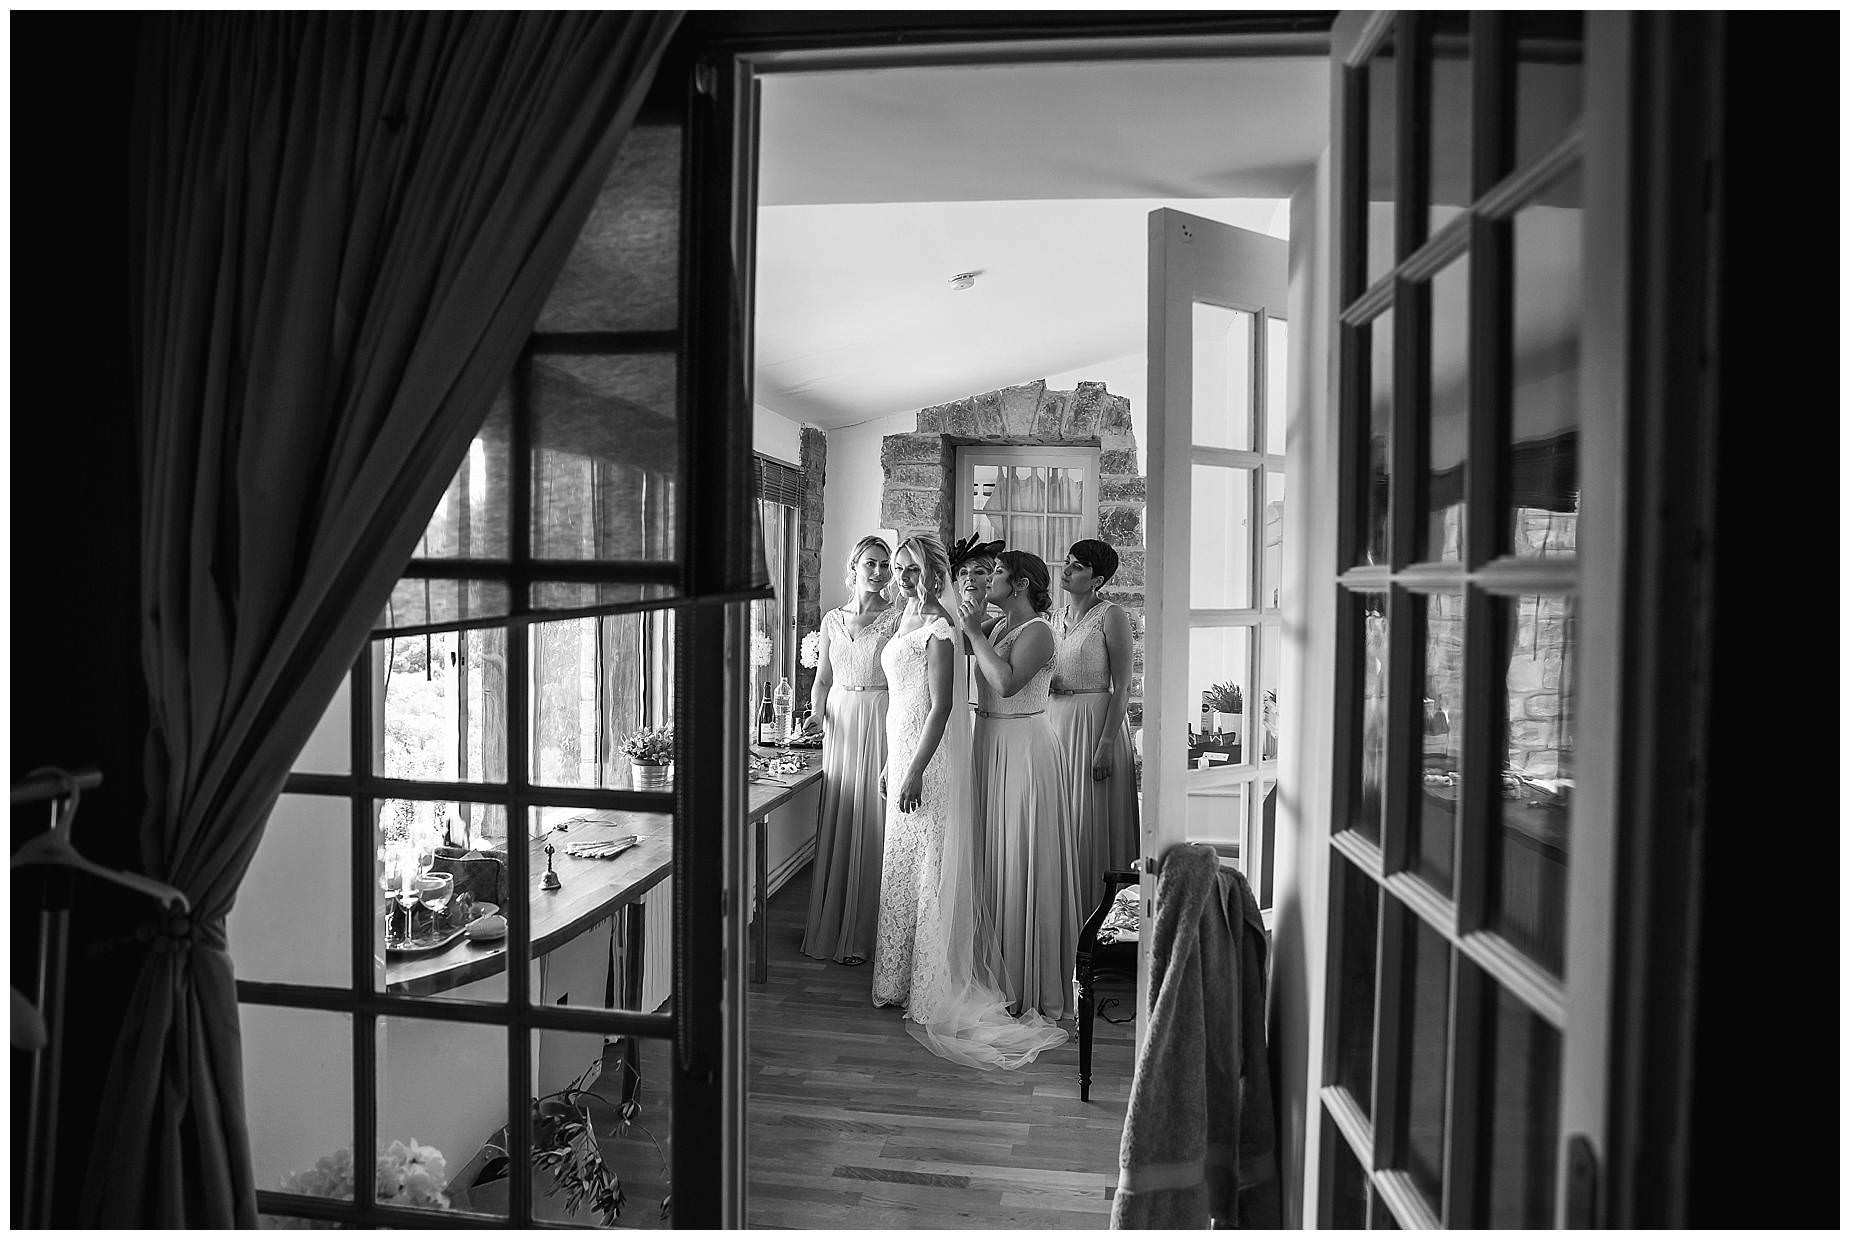 girls through a door at Domaine Saint Germaine